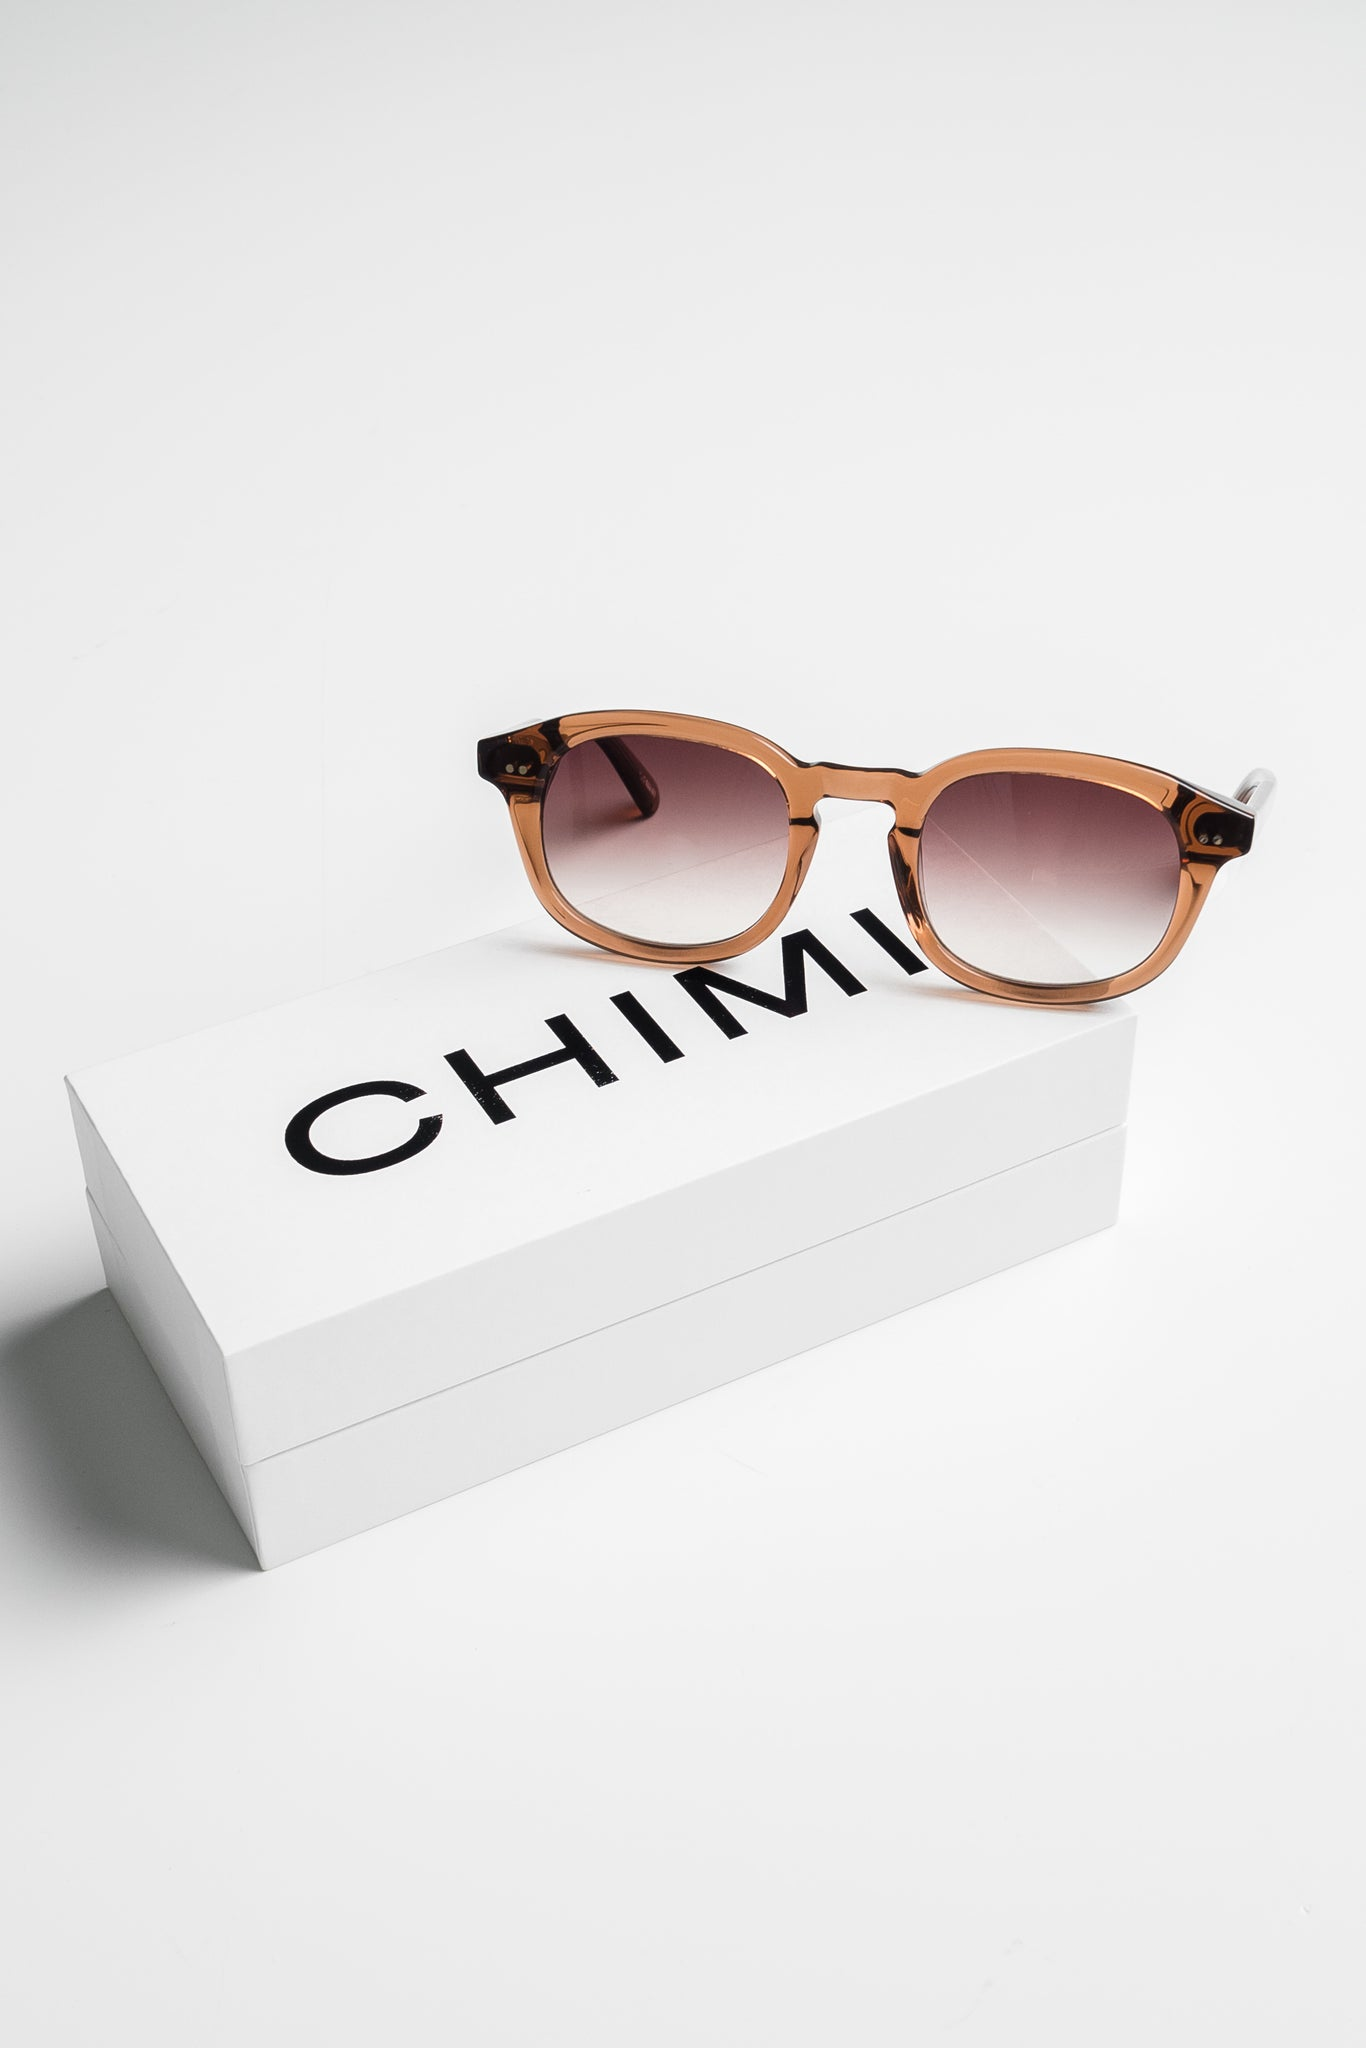 CHiMi Extended collection aurinkolasit - #102 brown